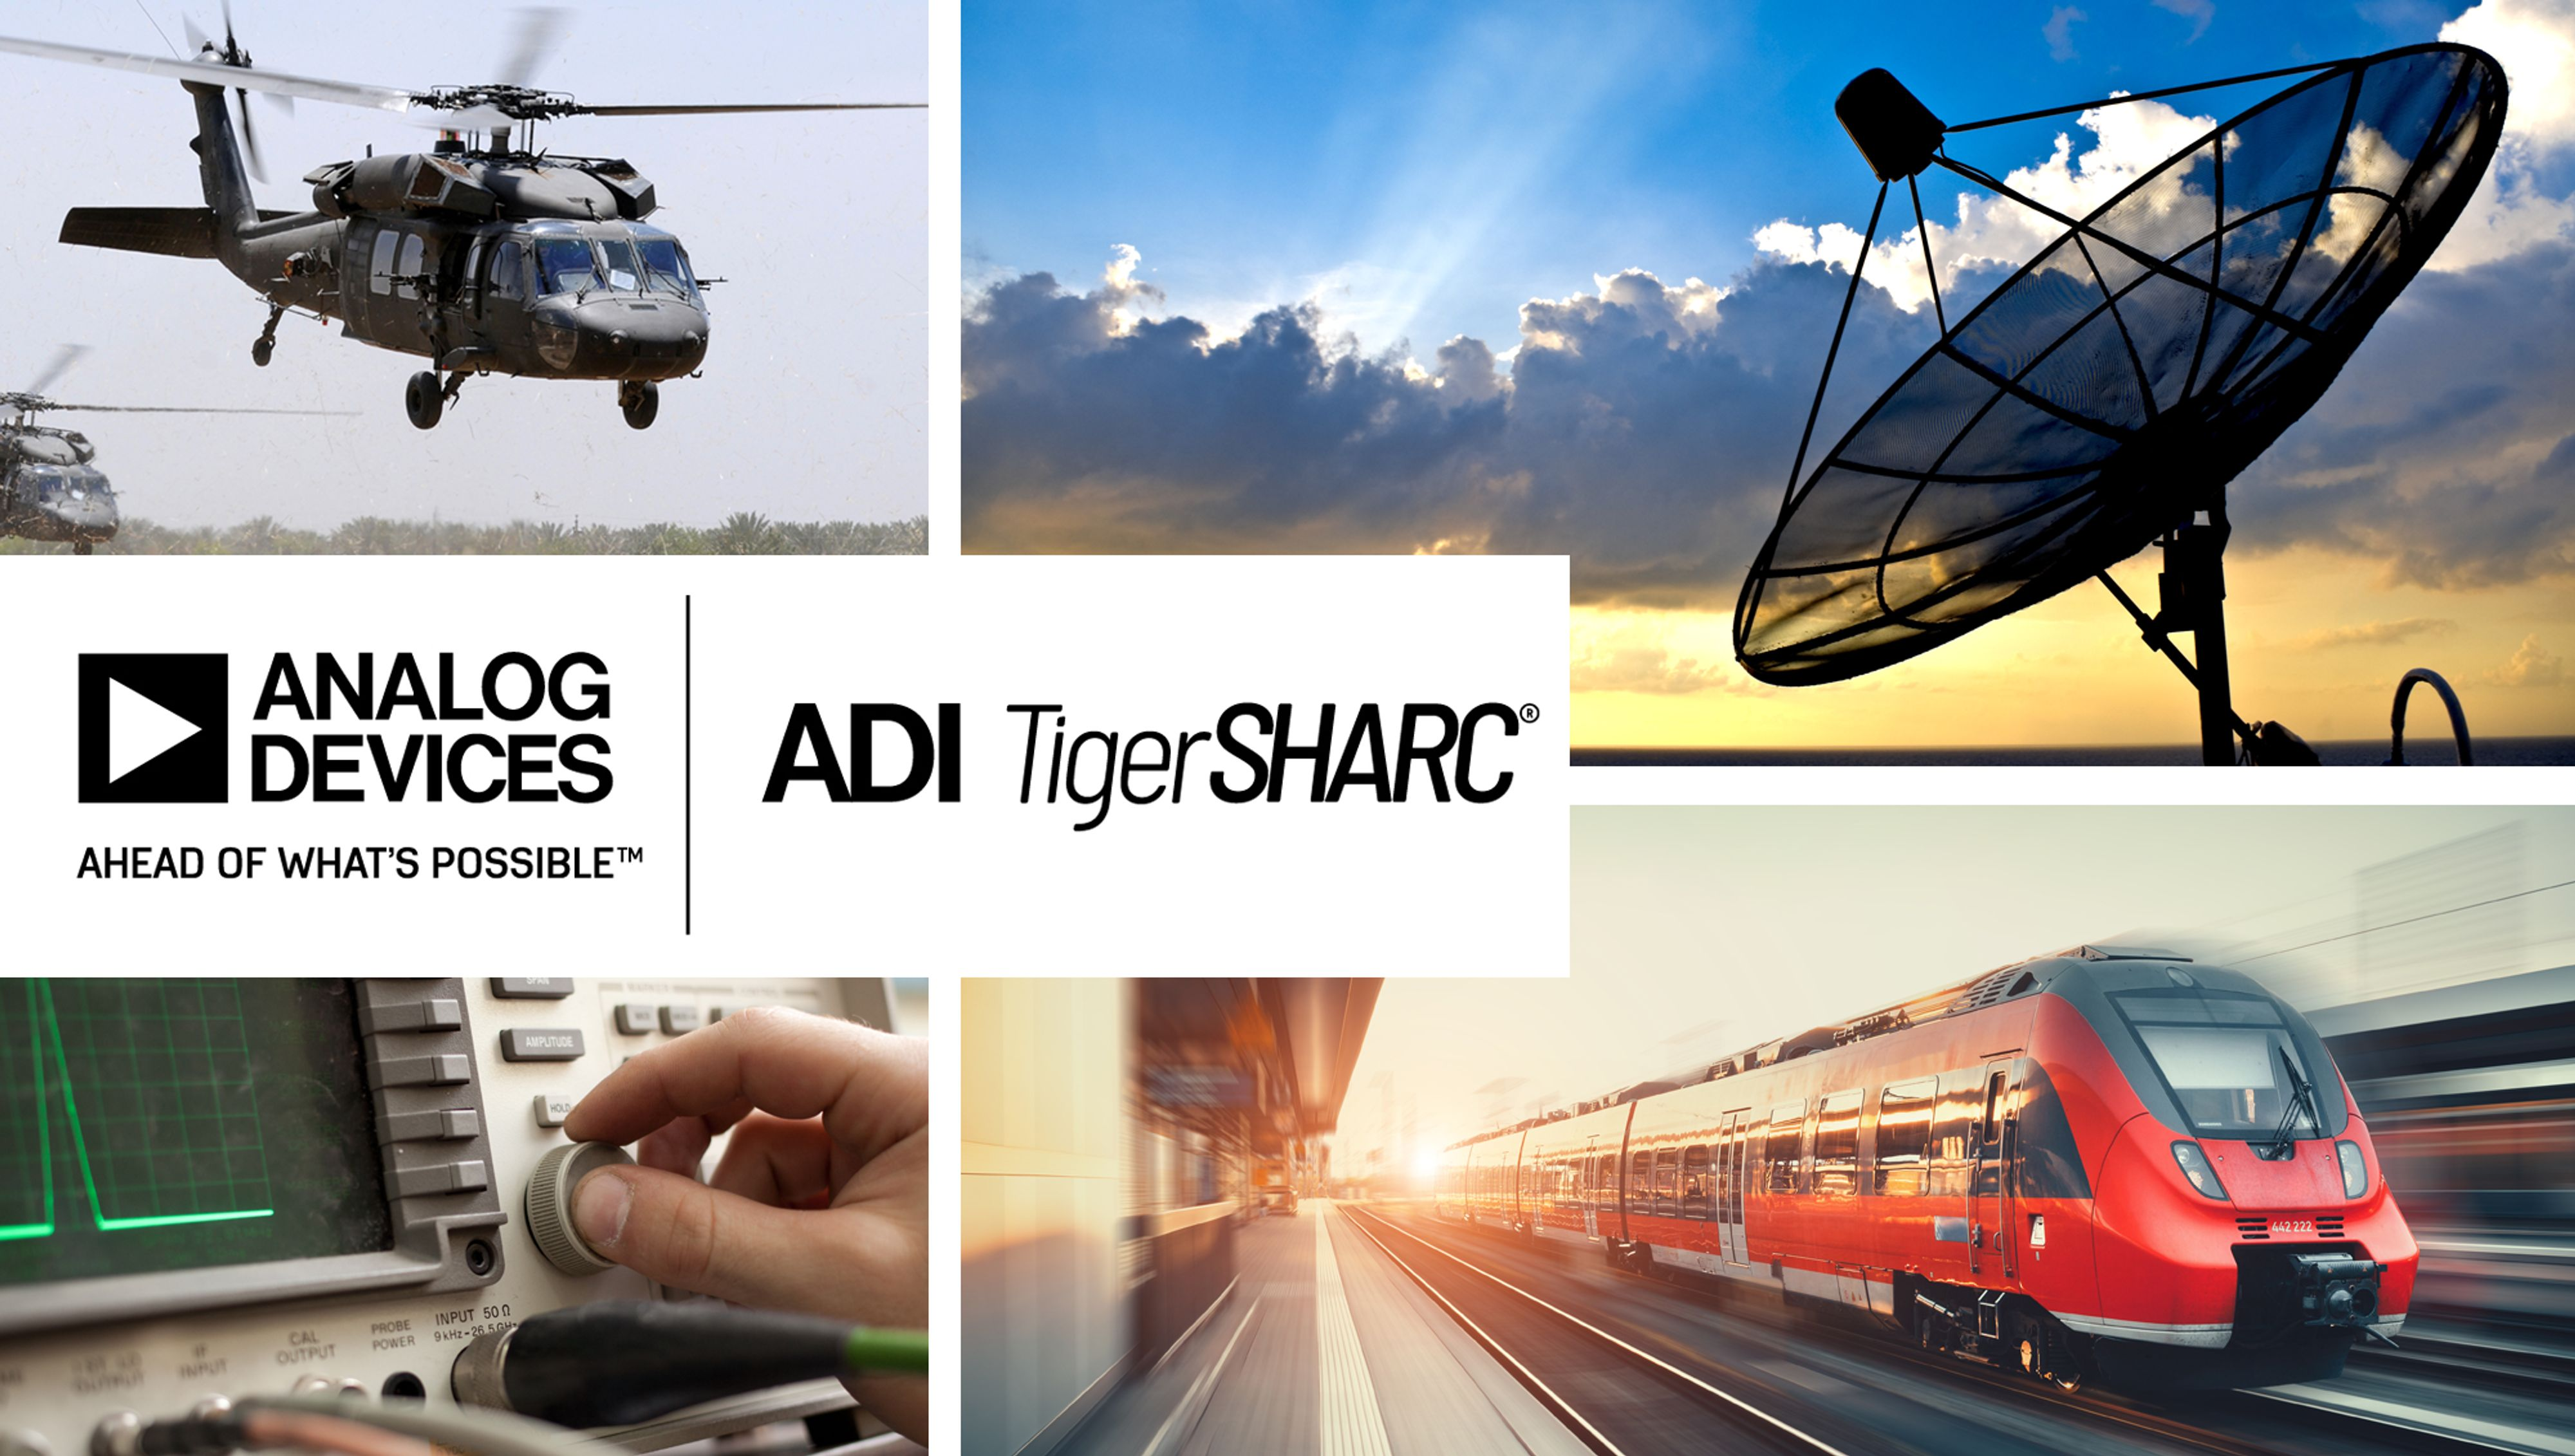 ADI%20TigerSHARC_campaign_image_Nov19